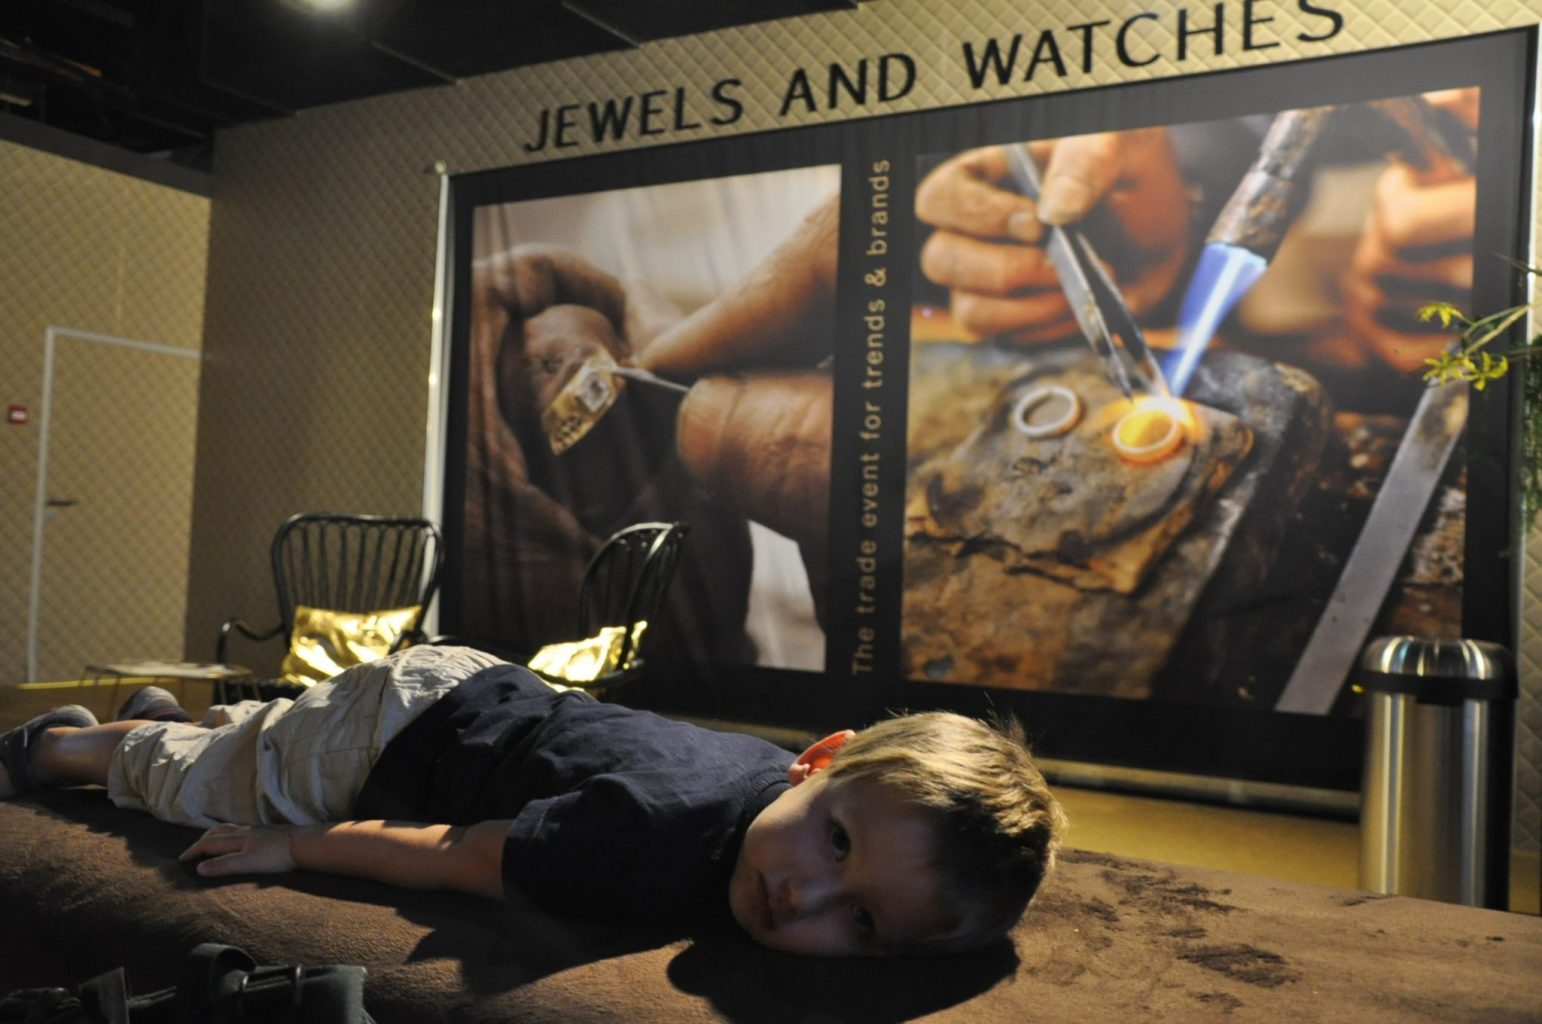 jewels and watches